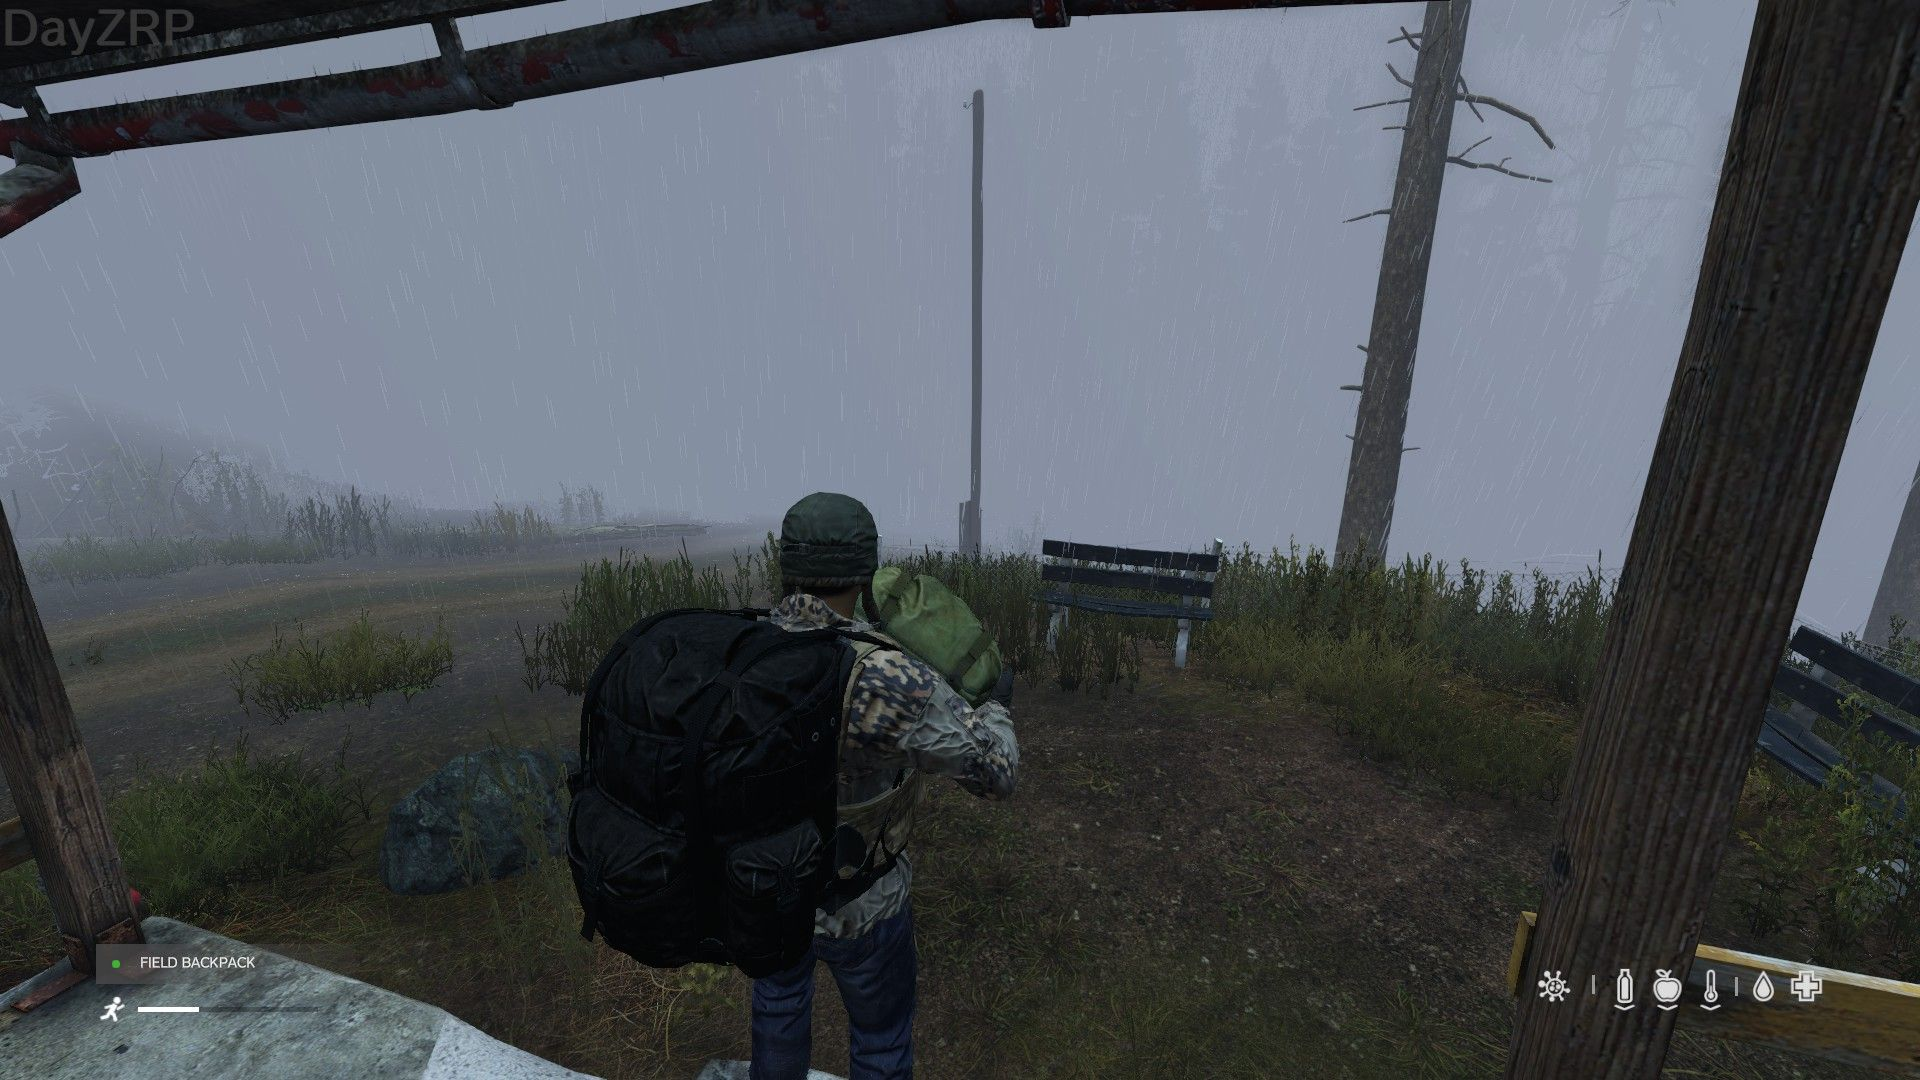 heavy rain and fog dayzrp.jpg